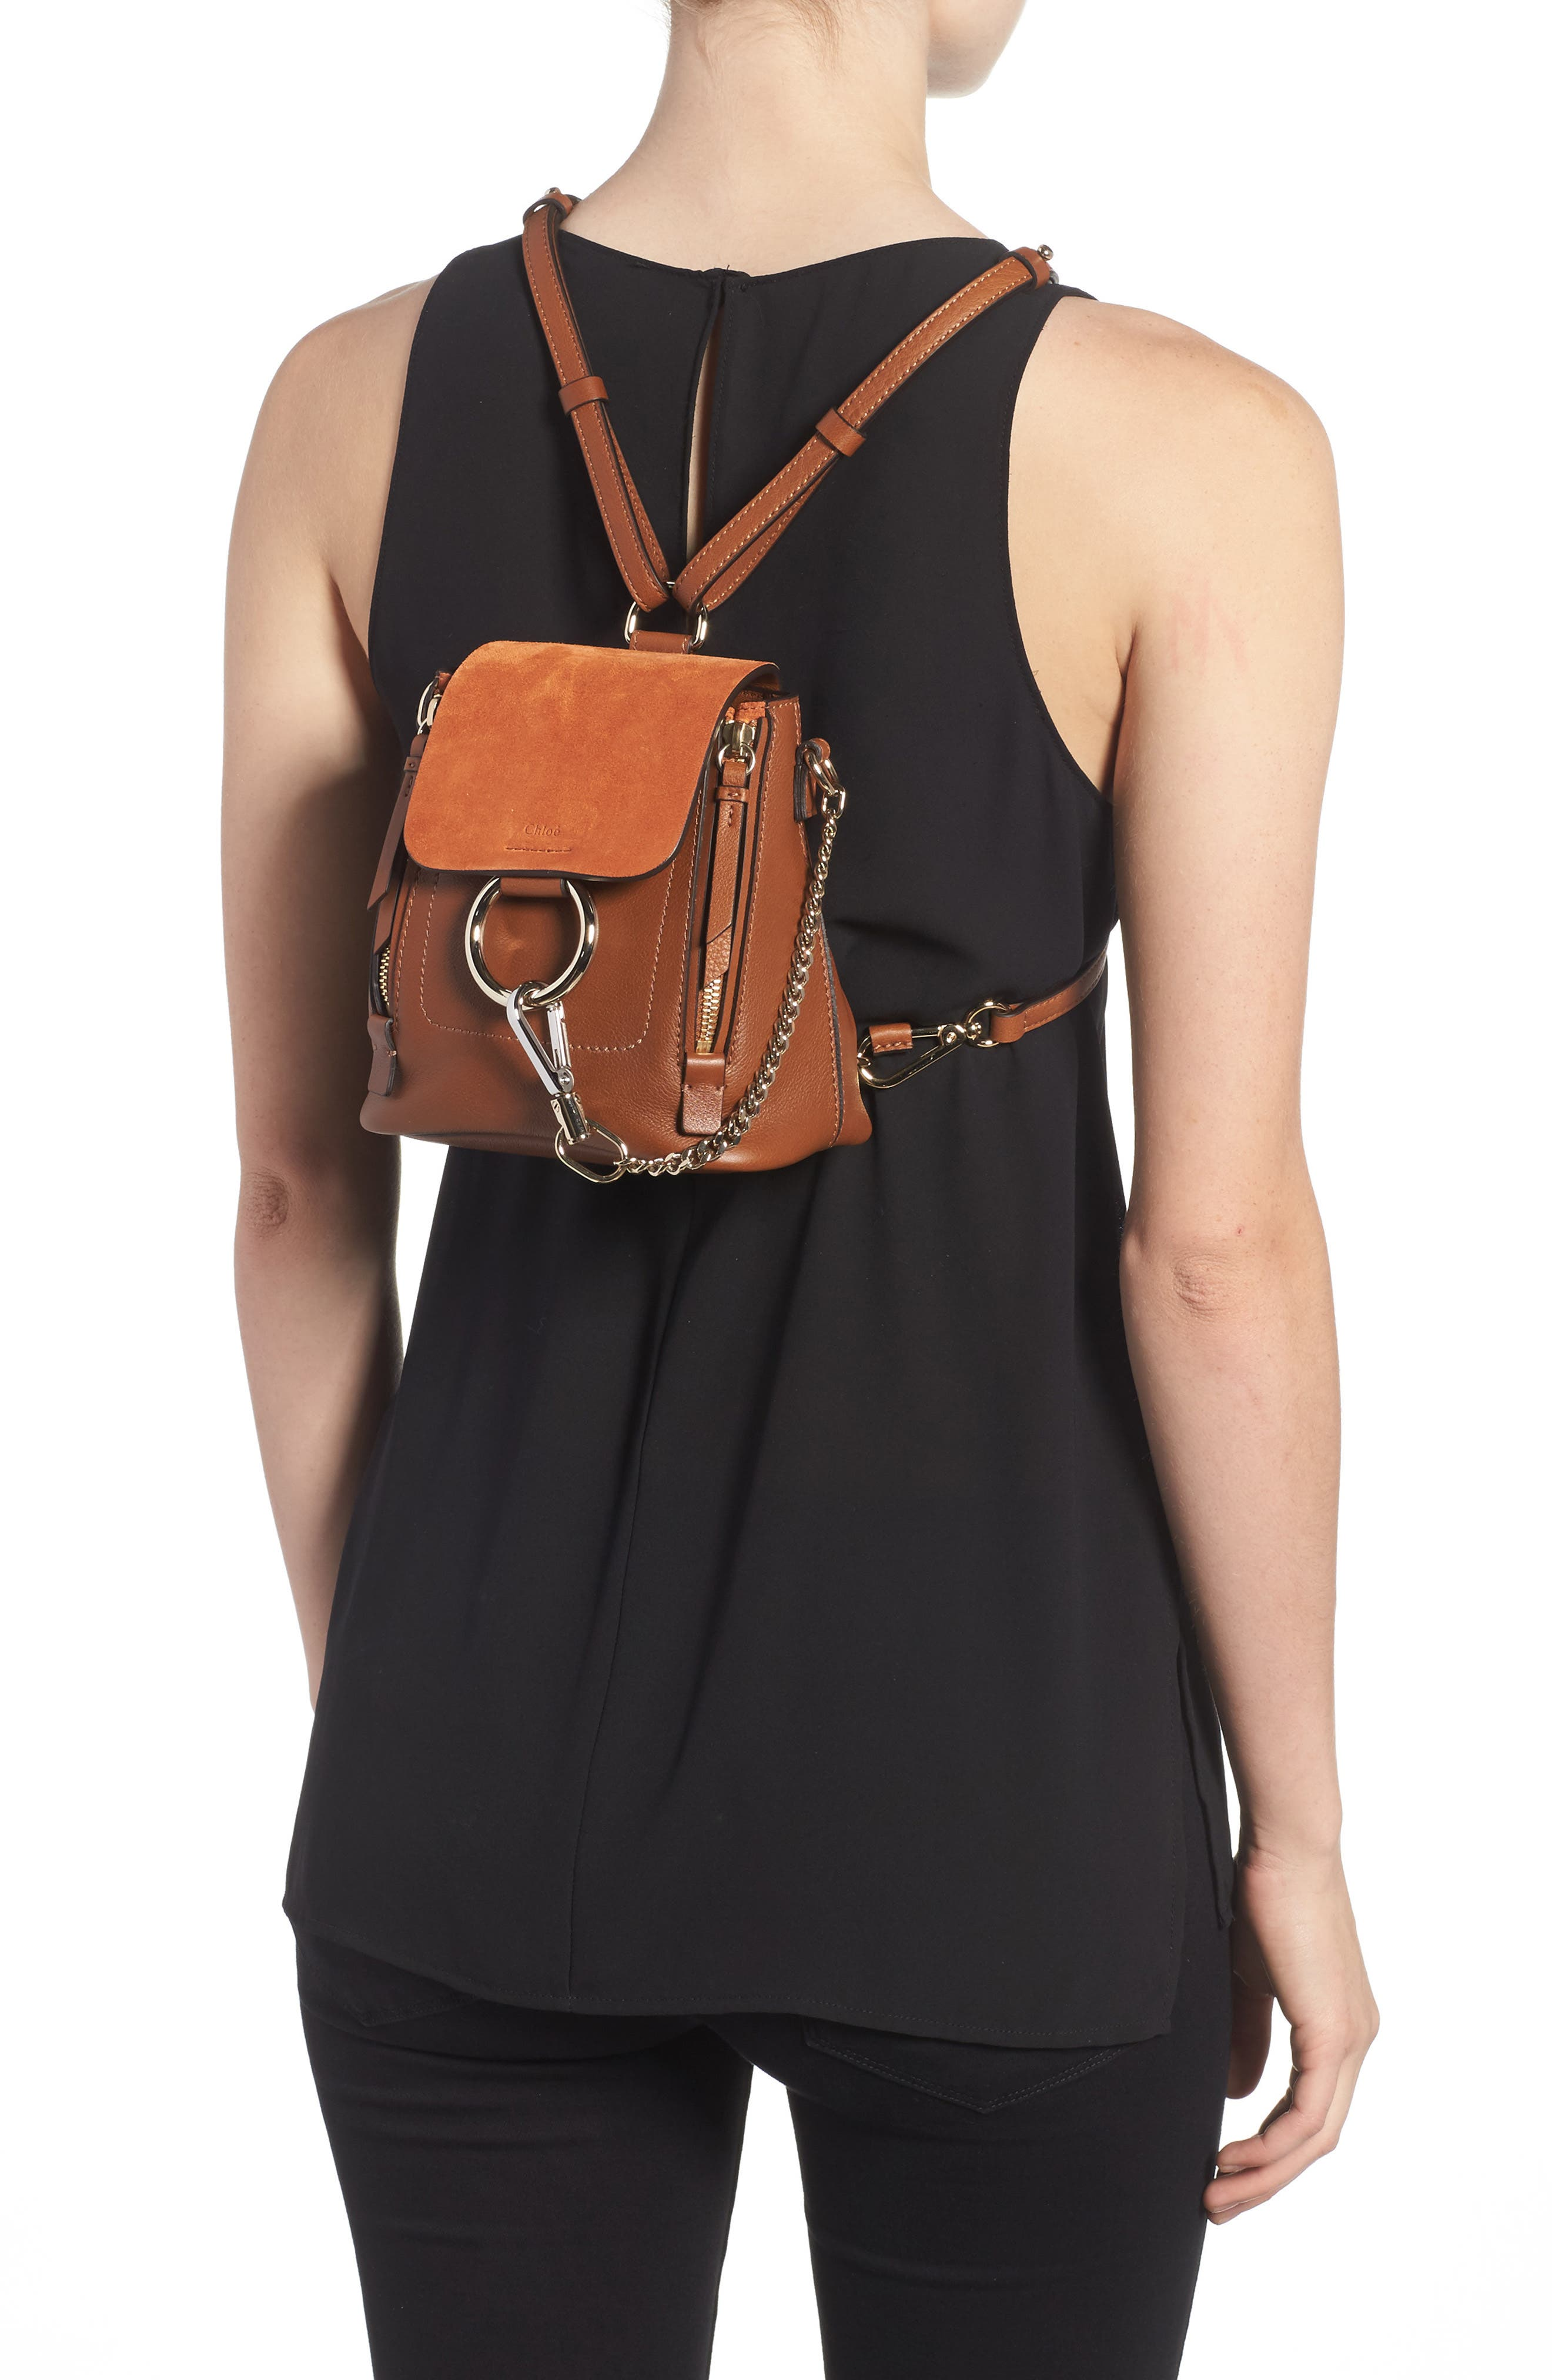 CHLOÉ, Mini Faye Leather & Suede Backpack, Alternate thumbnail 2, color, TAN